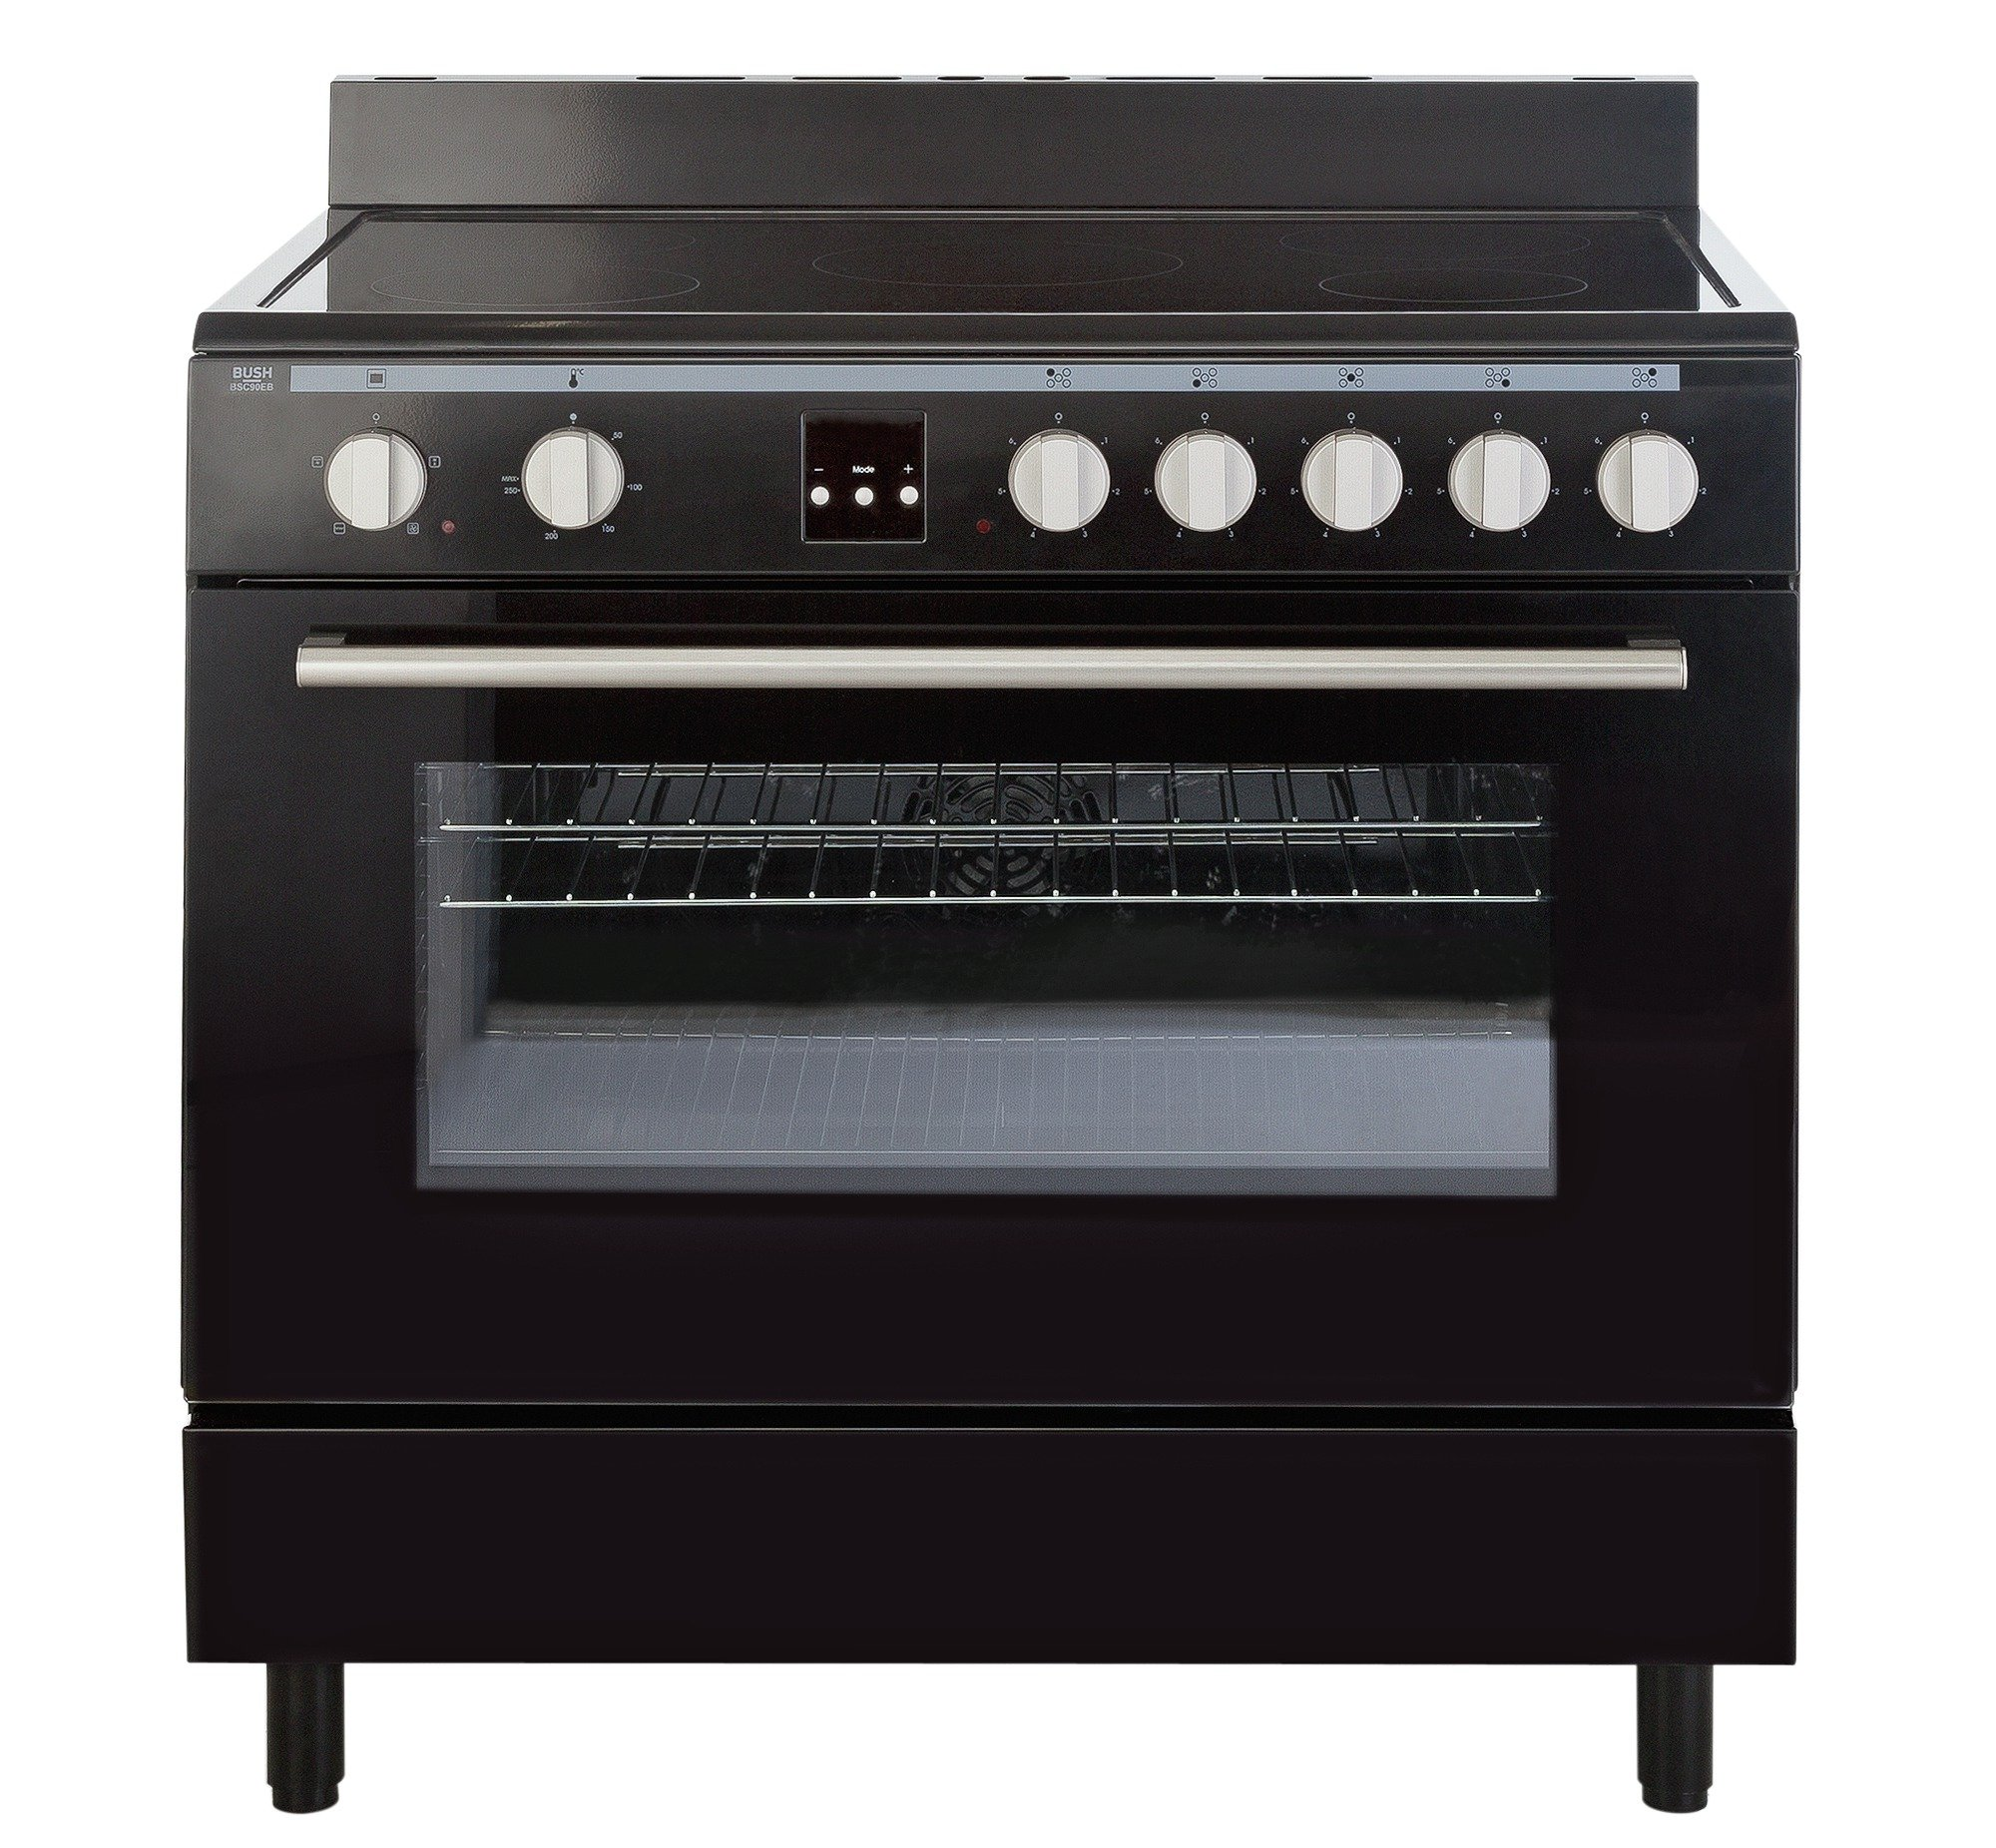 Bush bsc90eb electric range cooker review Kitchen appliance reviews uk